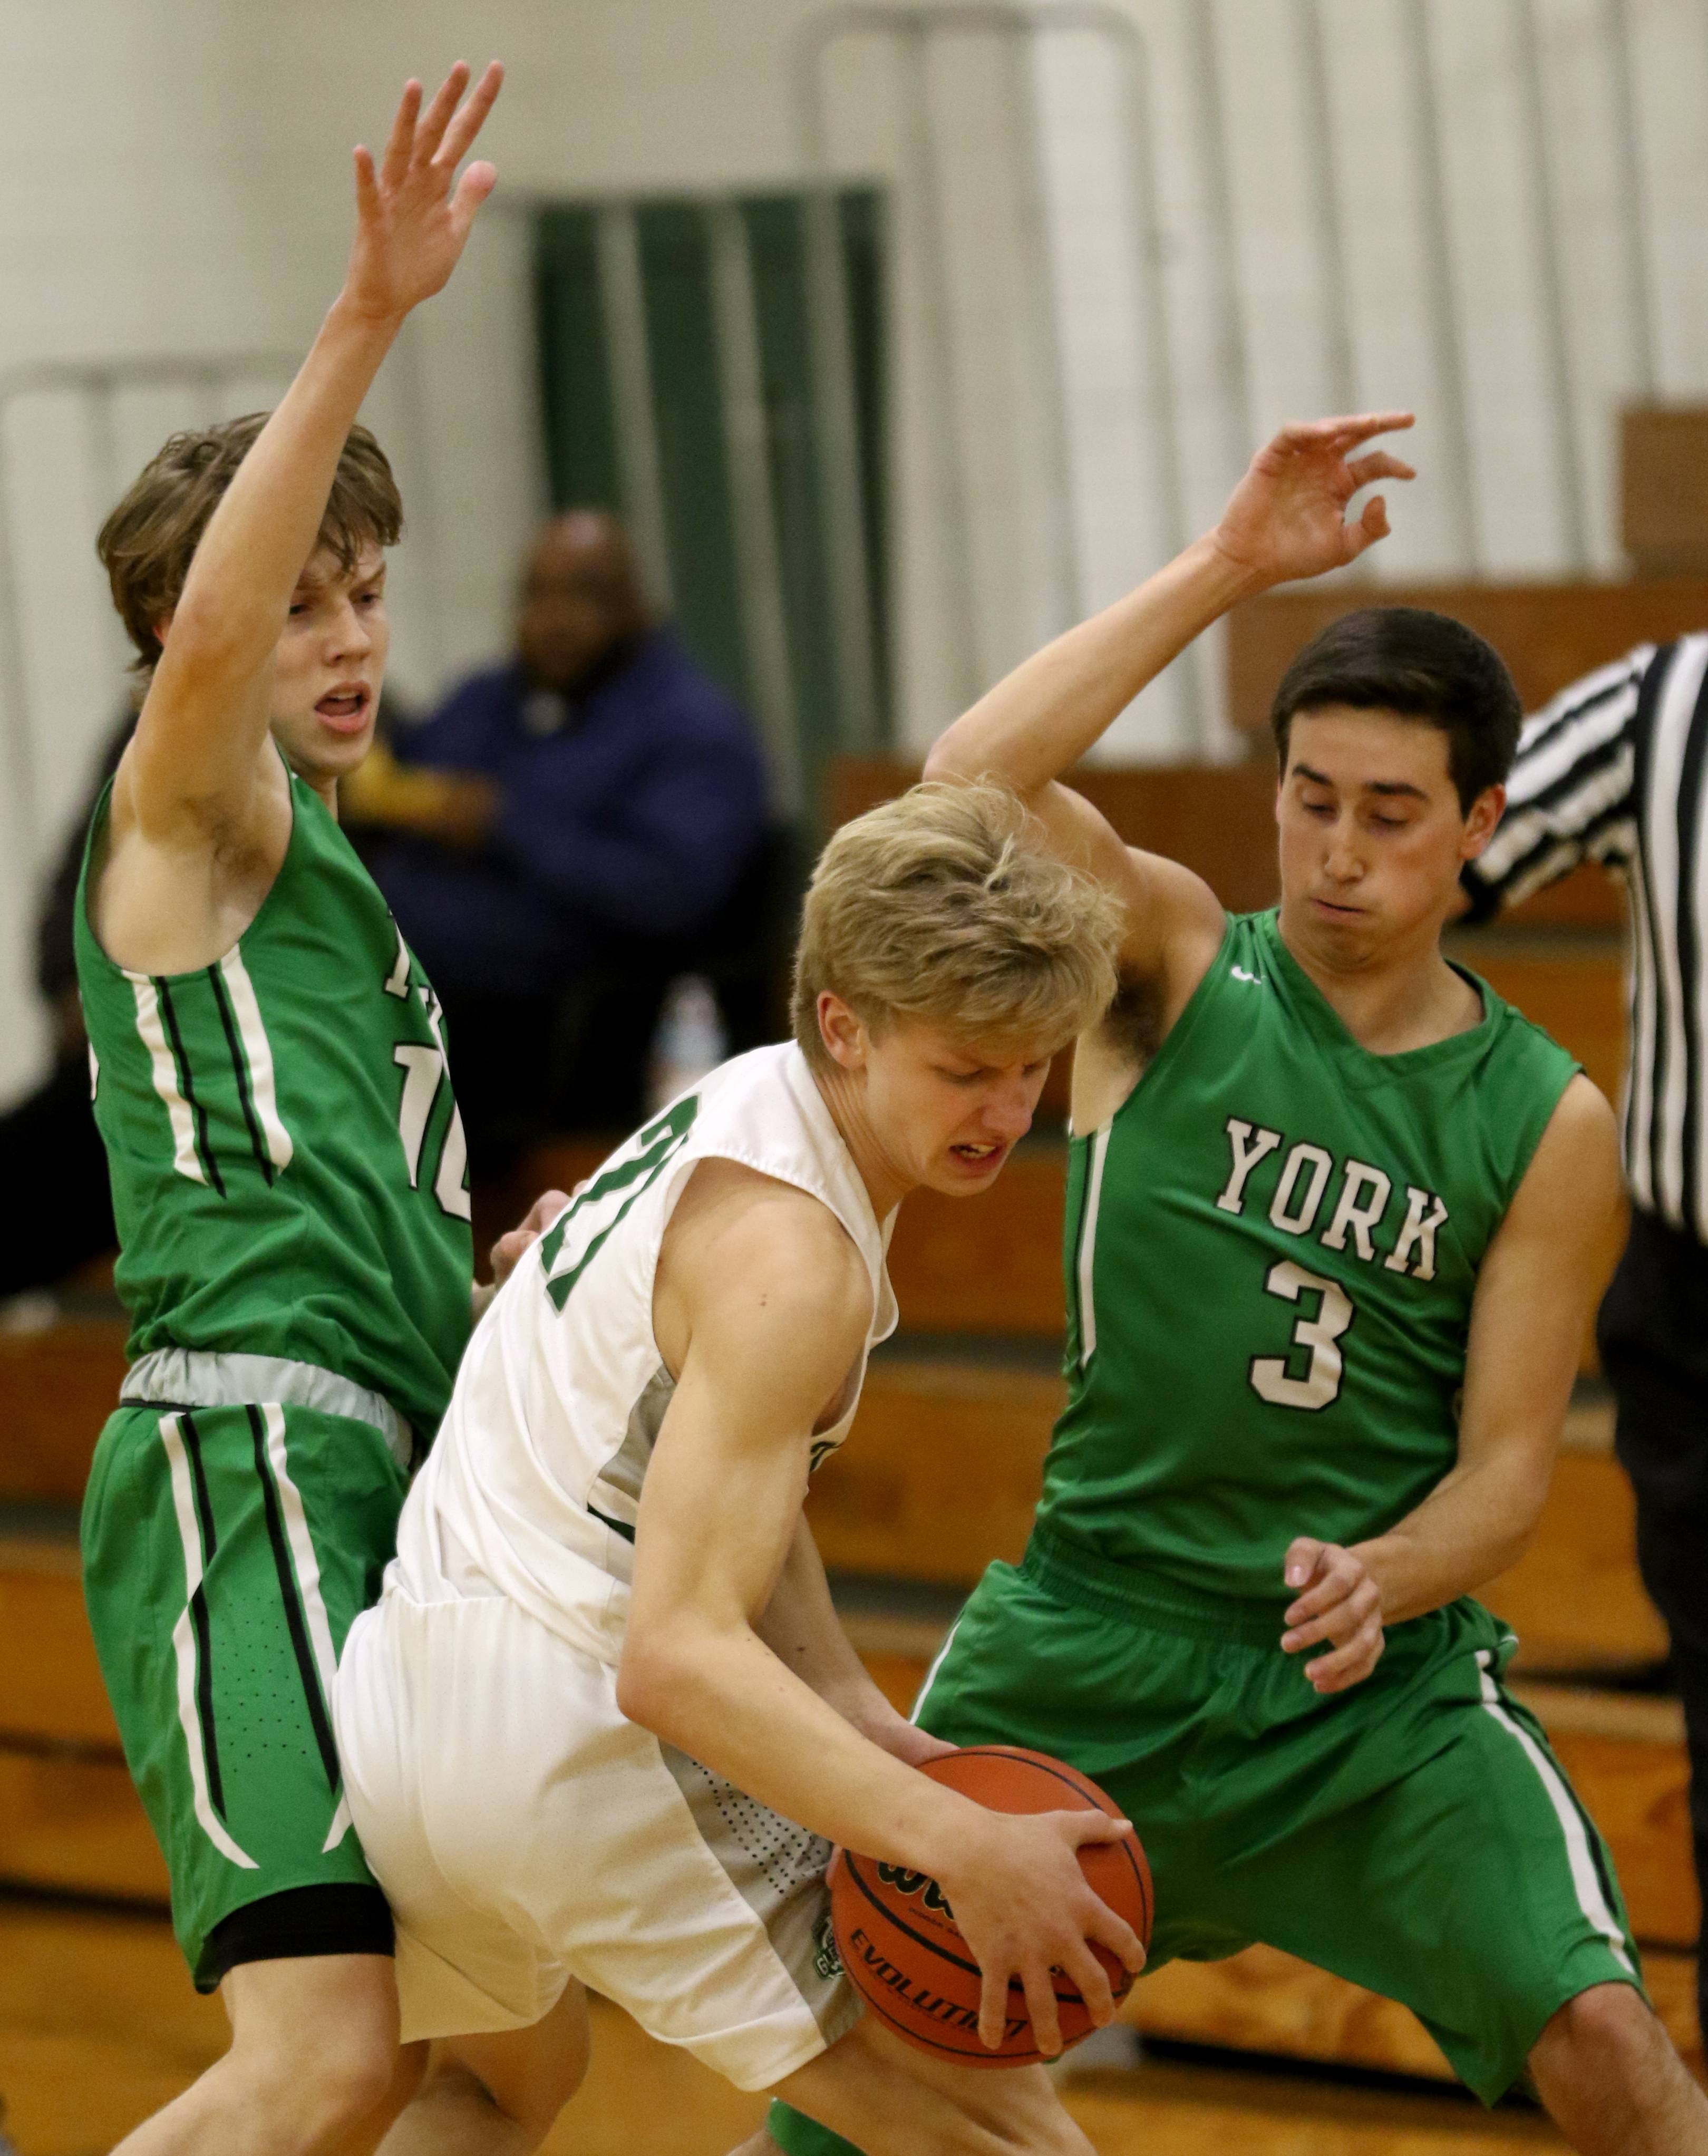 York's Nathan Shockey, left, and Nicholas Kosich, right, guard Glenbard West's Carter Lindstrom during varsity boys basketball at Fred L. Biester Gymnasium on the campus of Glenbard West Tuesday night.